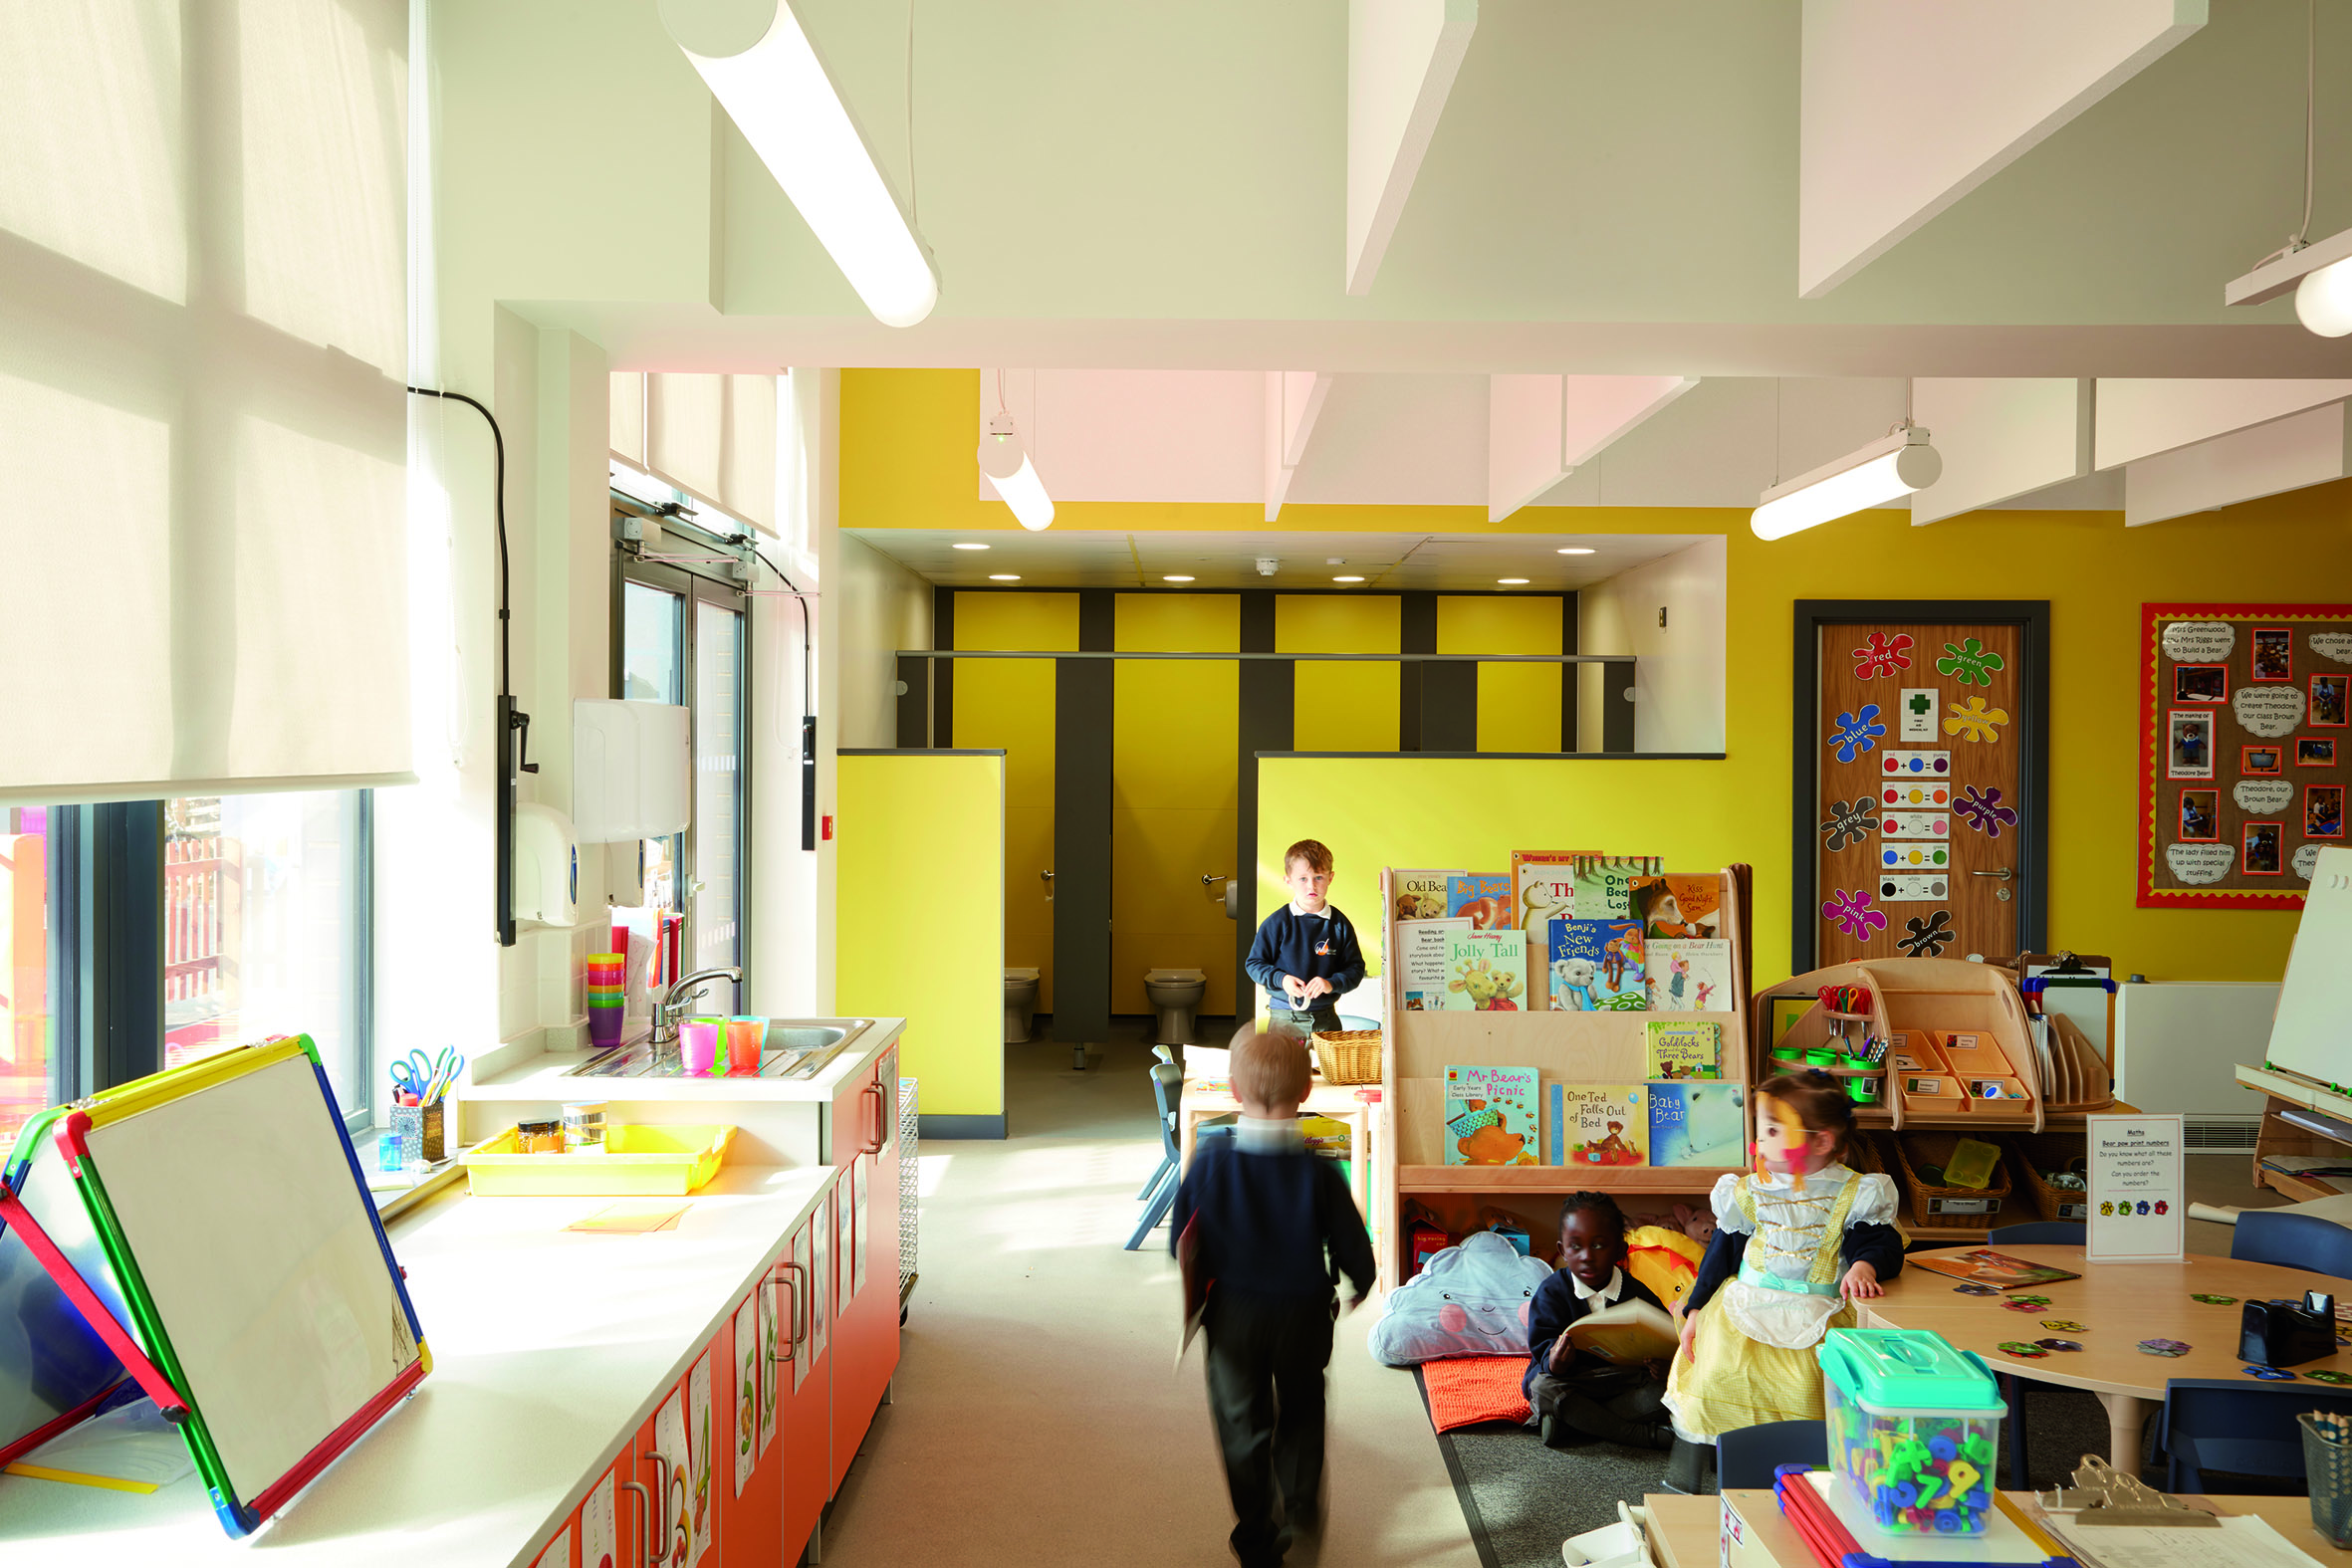 Whitehouse School play room